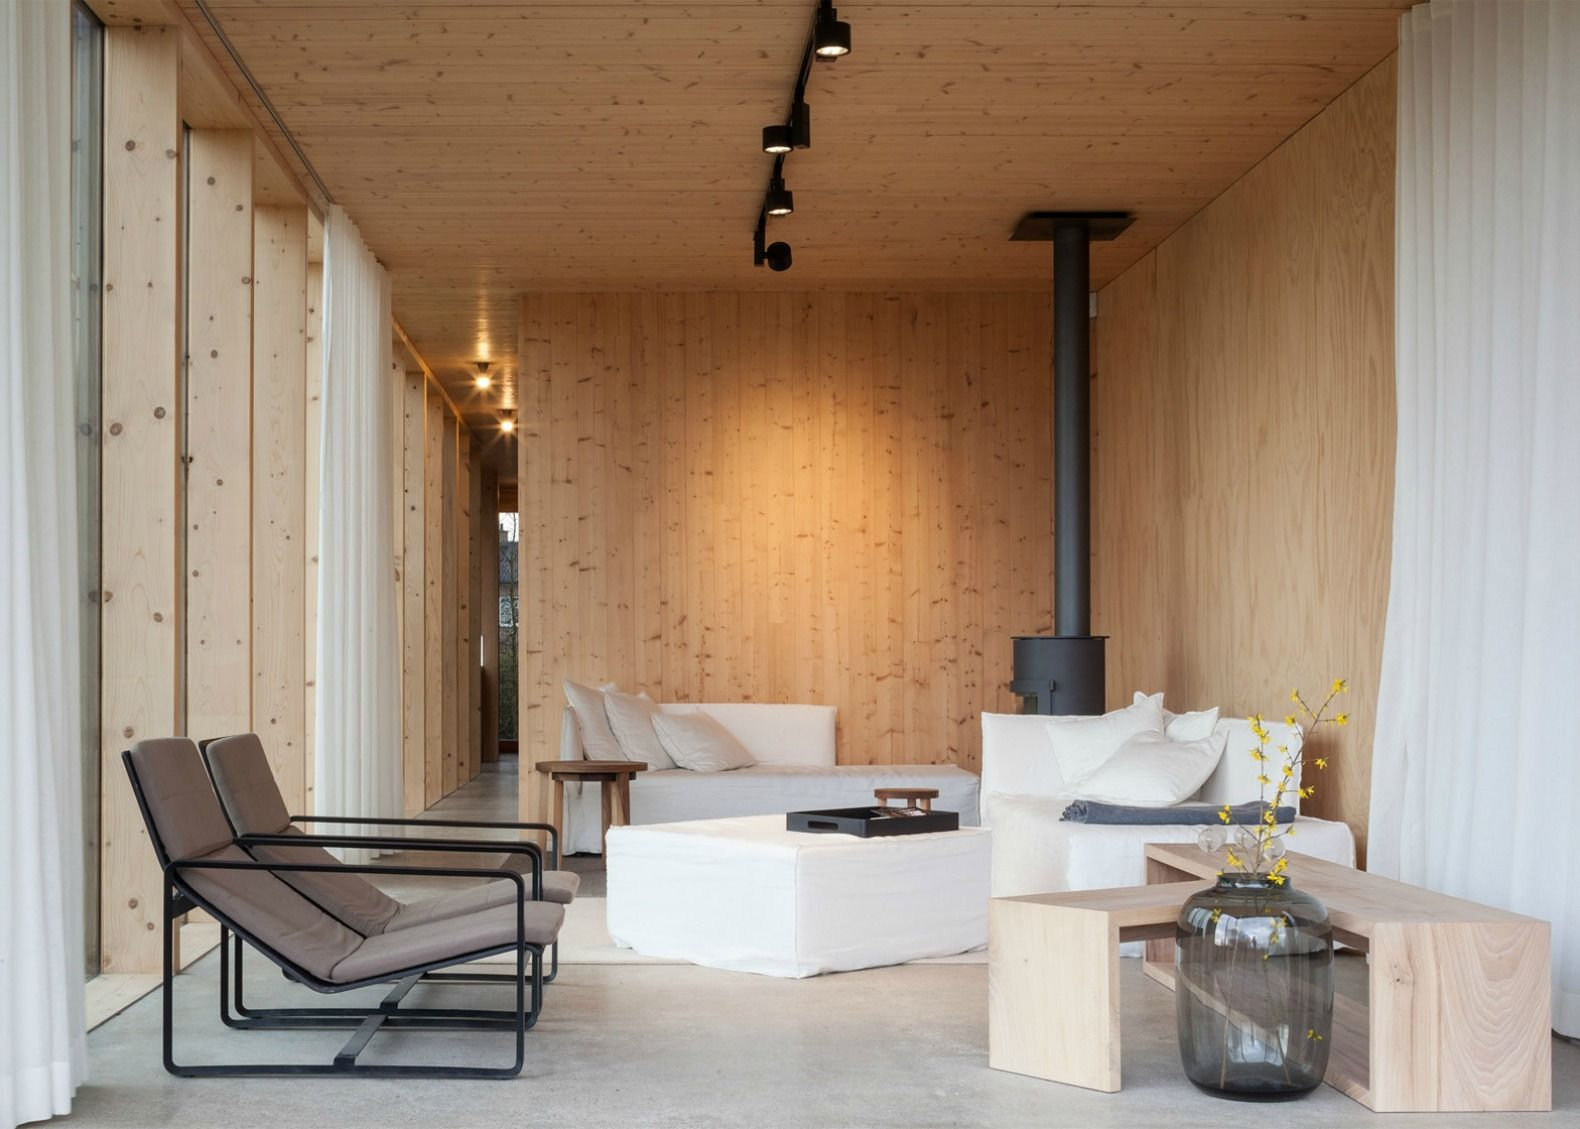 Ghent based Architecture studio GAFPA incorporated simple low cost